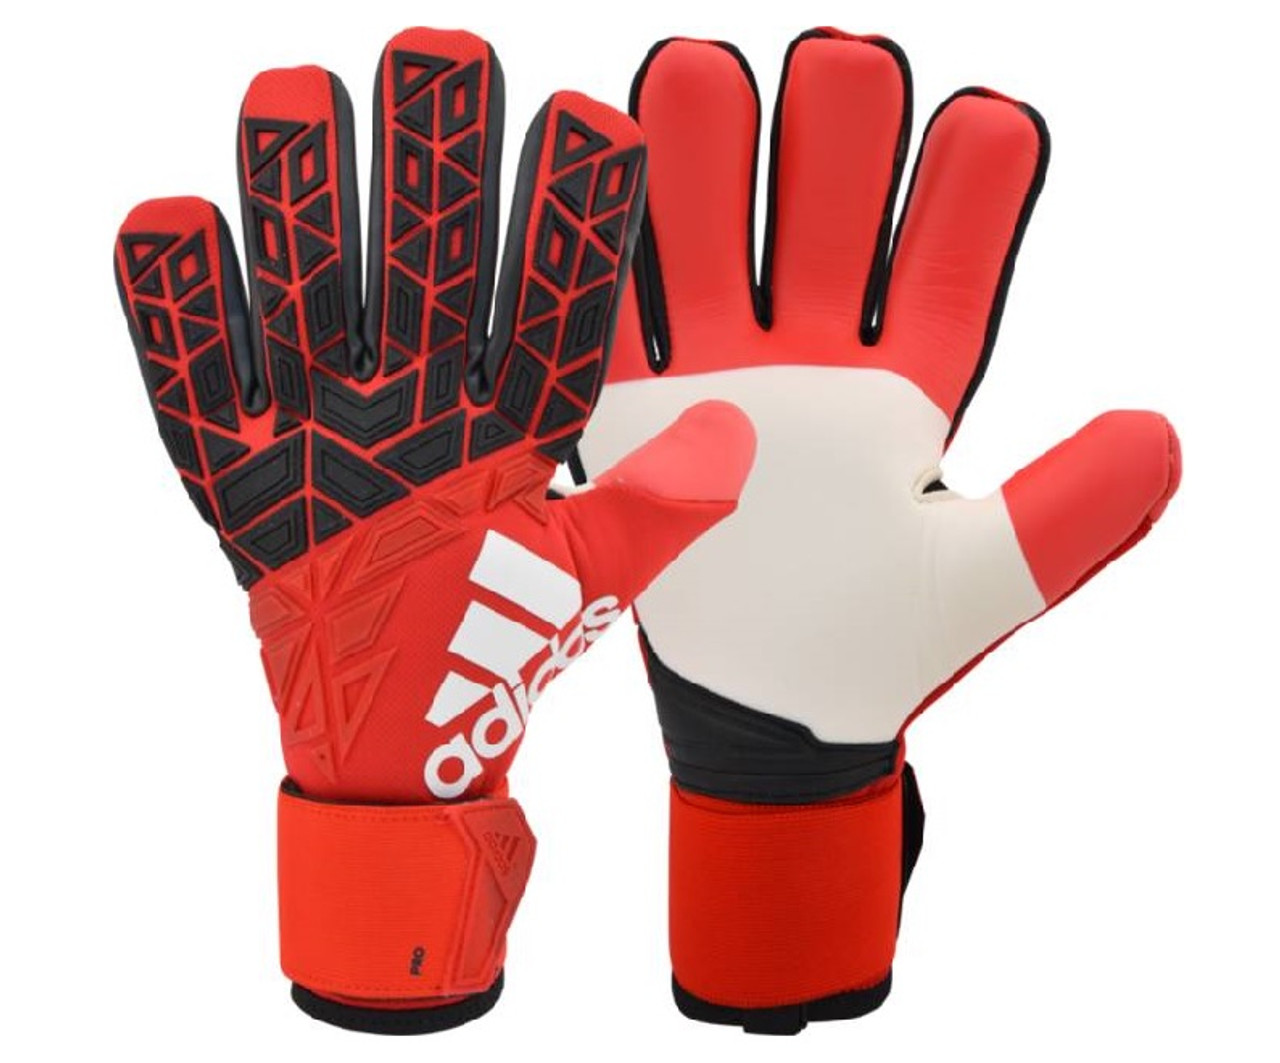 quality design 16b8b ad550 Adidas Ace Trans Pro GK Glove - Red/Black/White (012819)